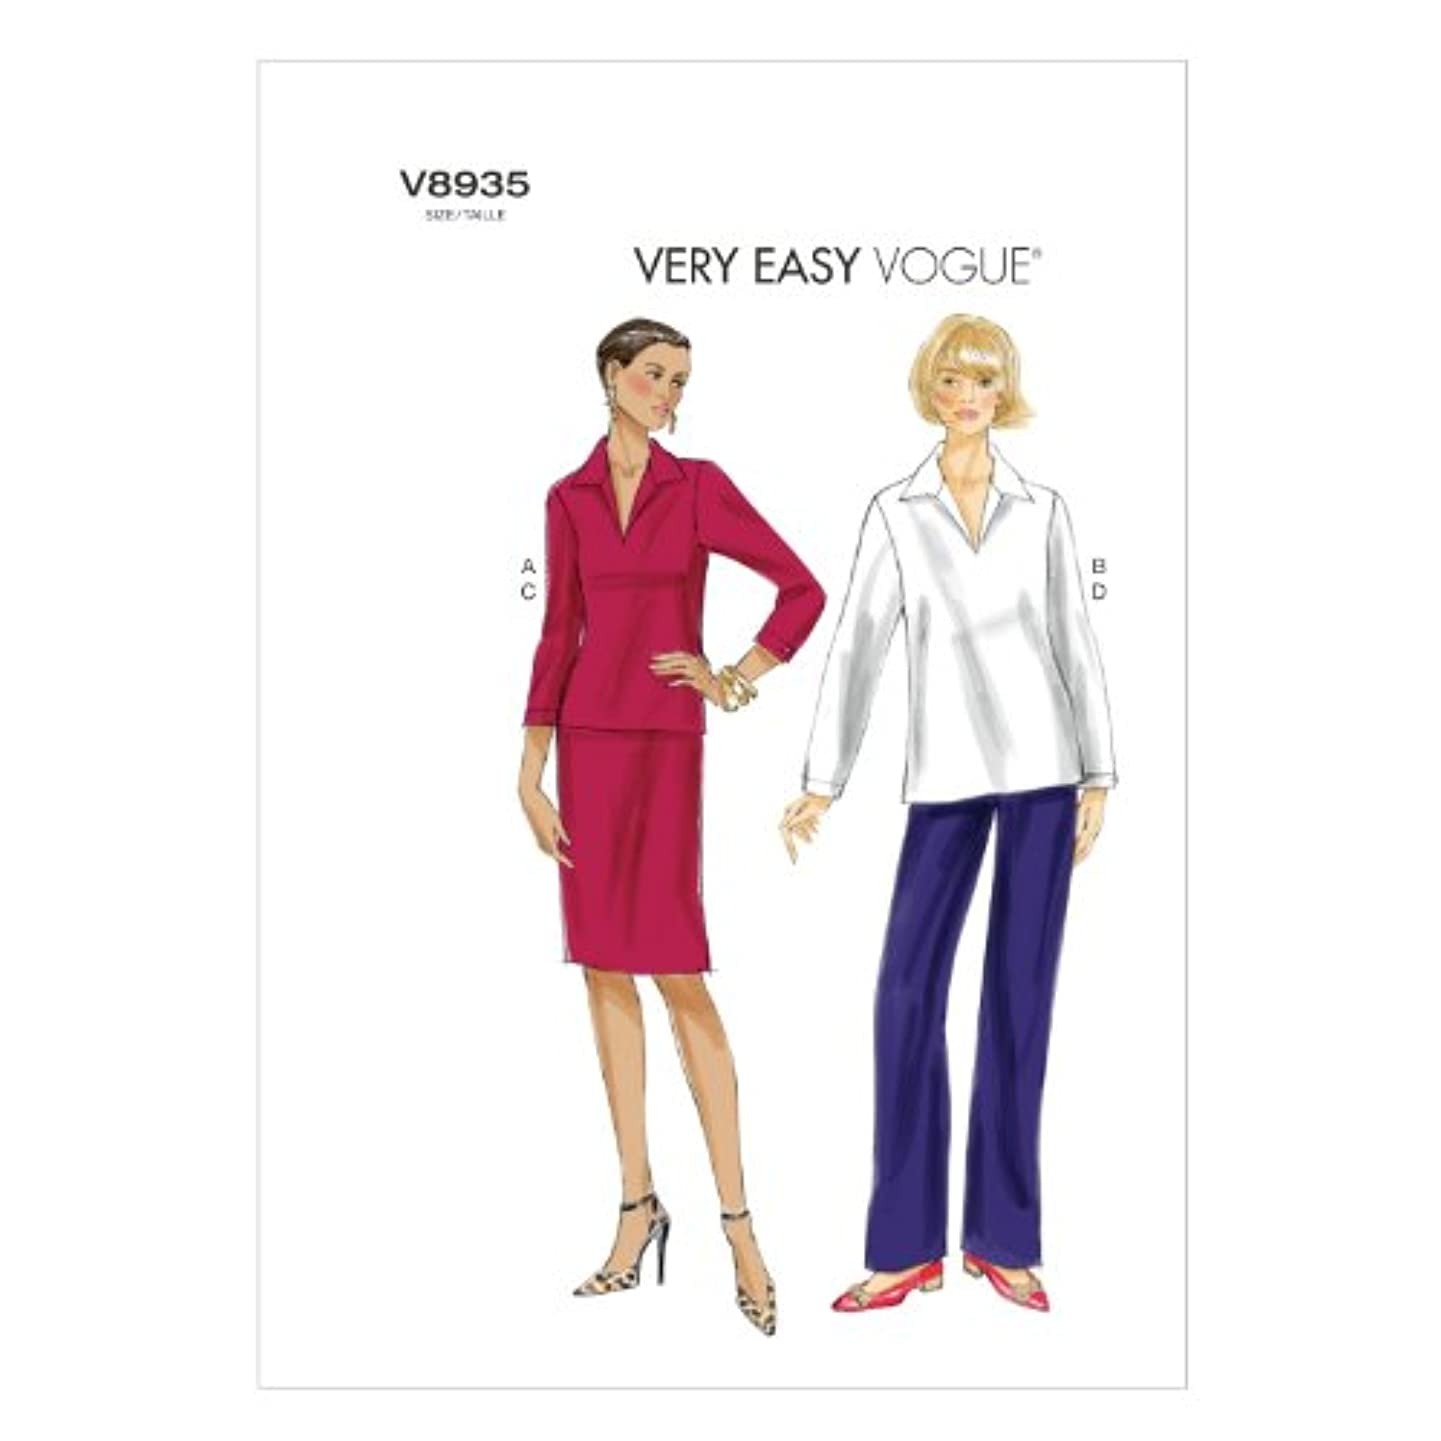 Vogue Patterns V8935 Misses' Top, Skirt and Pants Sewing Templates, Size B5 (8-10-12-14-16)